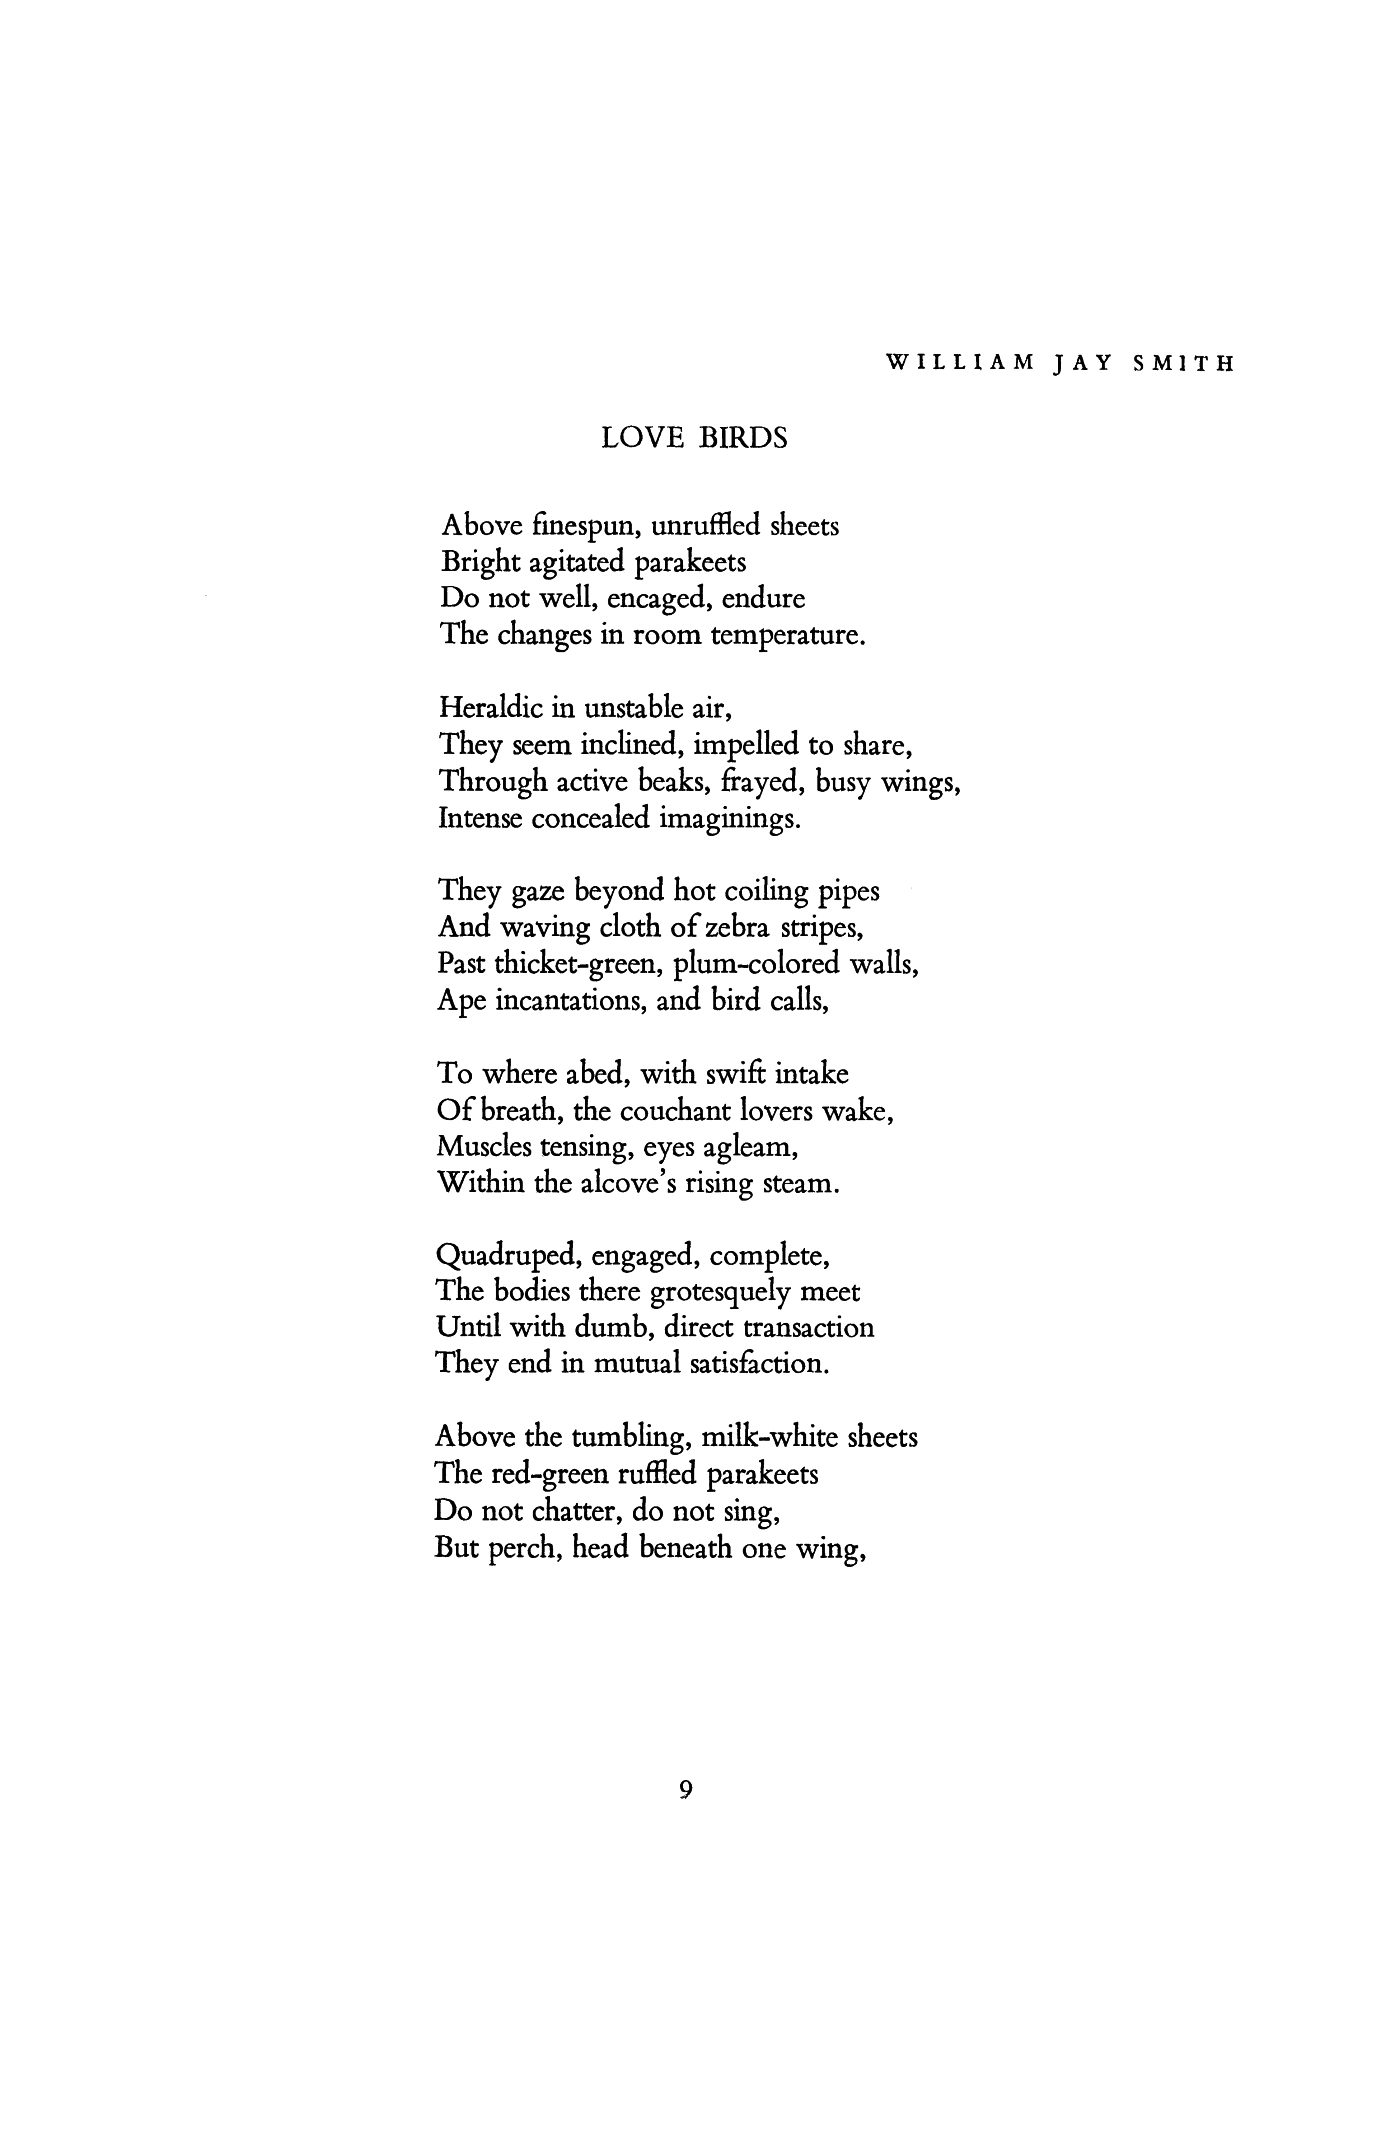 Love Birds by William Jay Smith | Poetry Magazine